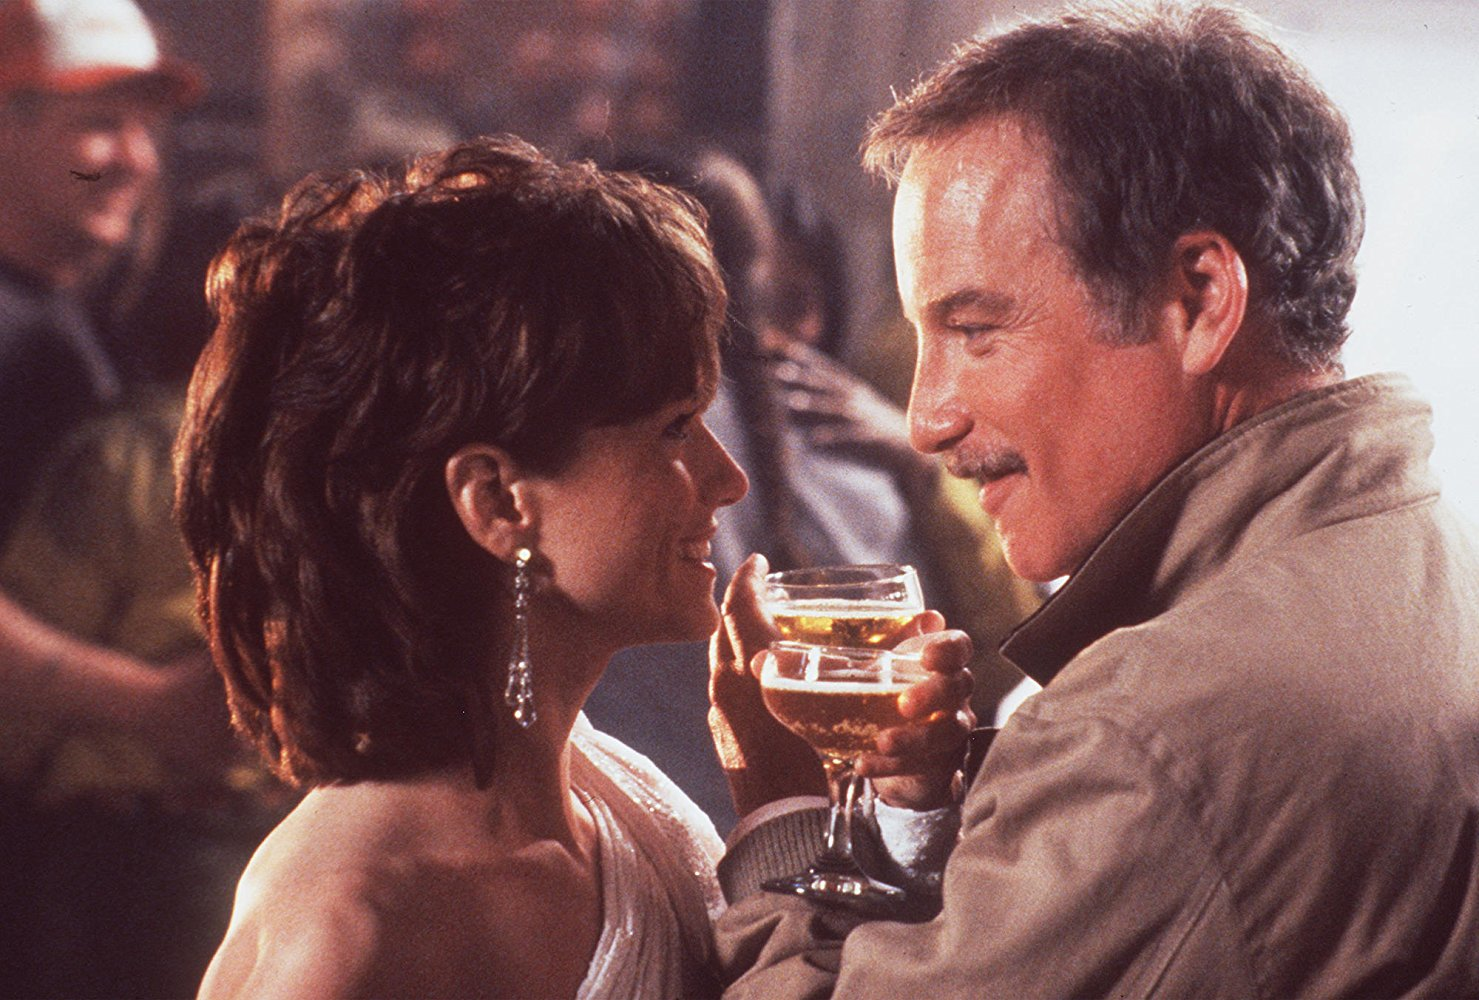 Pete (Richard Dreyfuss) and Dorinda (Holly Hunter) in Always (1989)